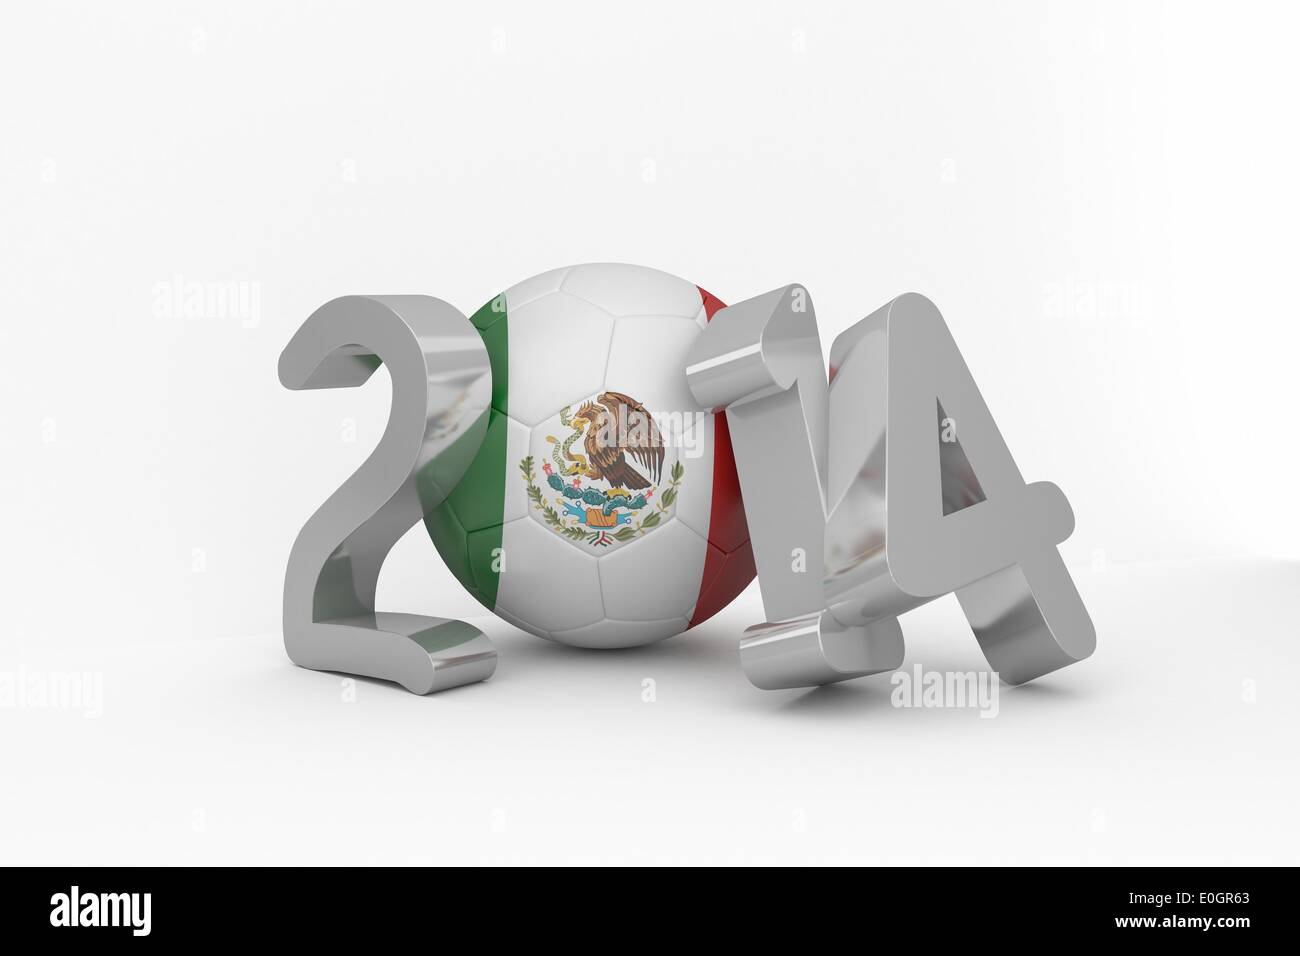 Mexico world cup 2014 Stock Photo